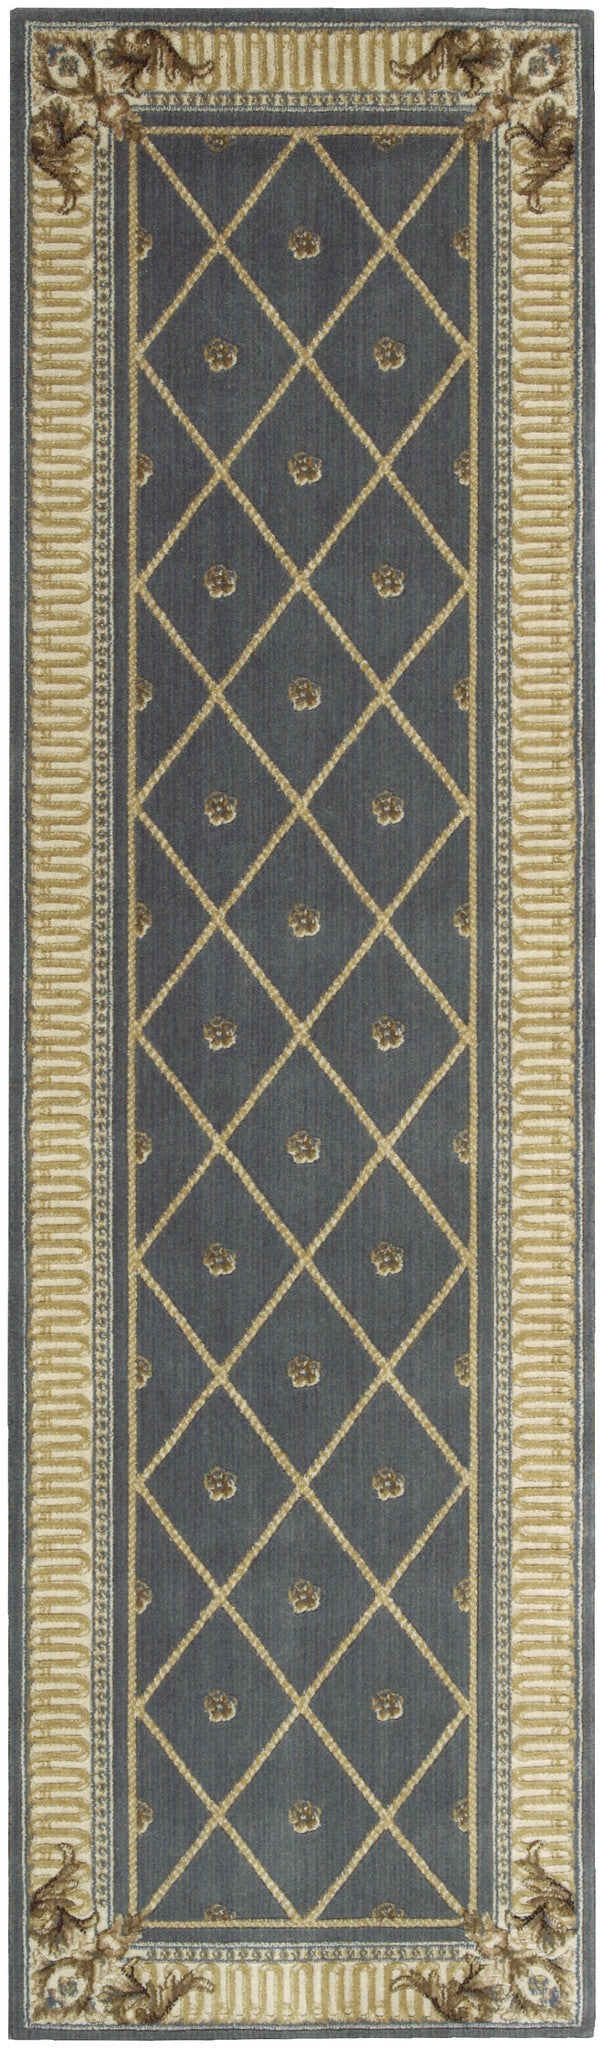 Nourison Ashton House Blue Area Rug AS03 BL